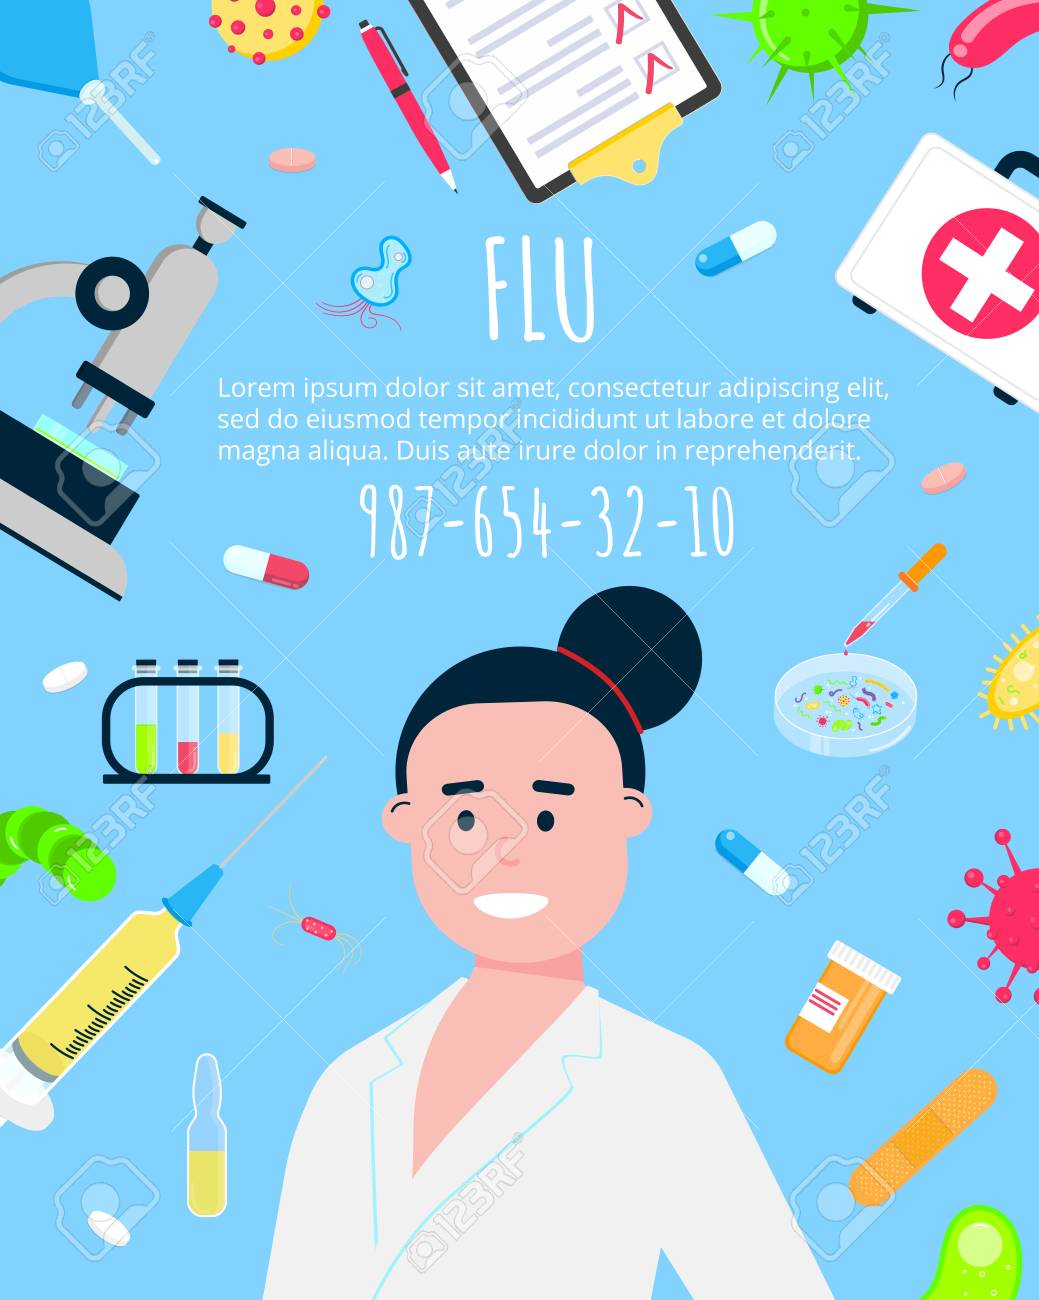 Vaccination Banner Flat Style Design Poster Female Medicine Royalty Free Cliparts Vectors And Stock Illustration Image 112246112